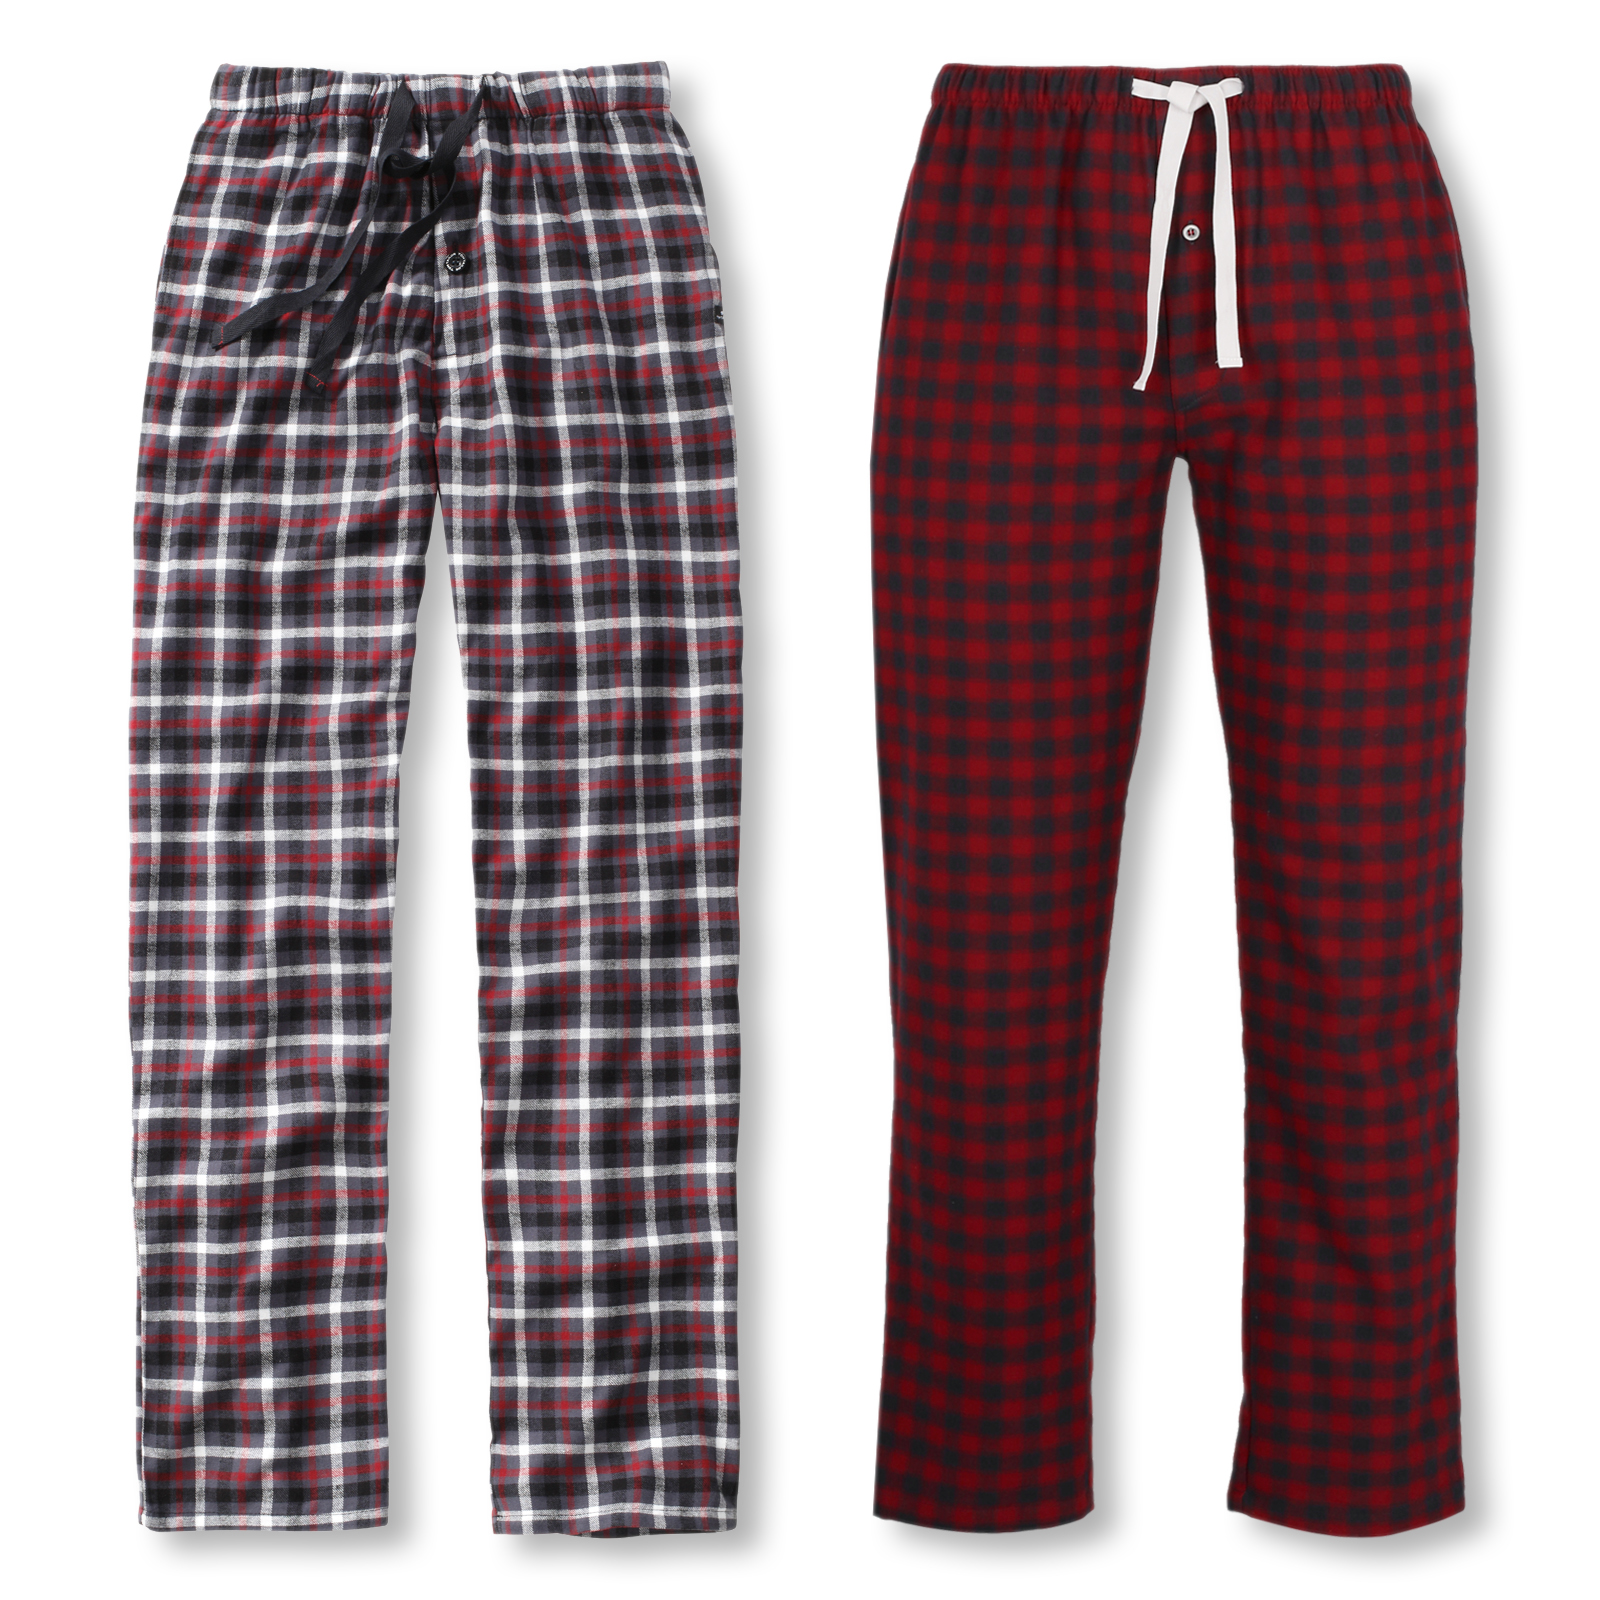 Tom Tailor Herren Flanell-Pyjamahose lang Homewear Schlafanzug Hose in red checked